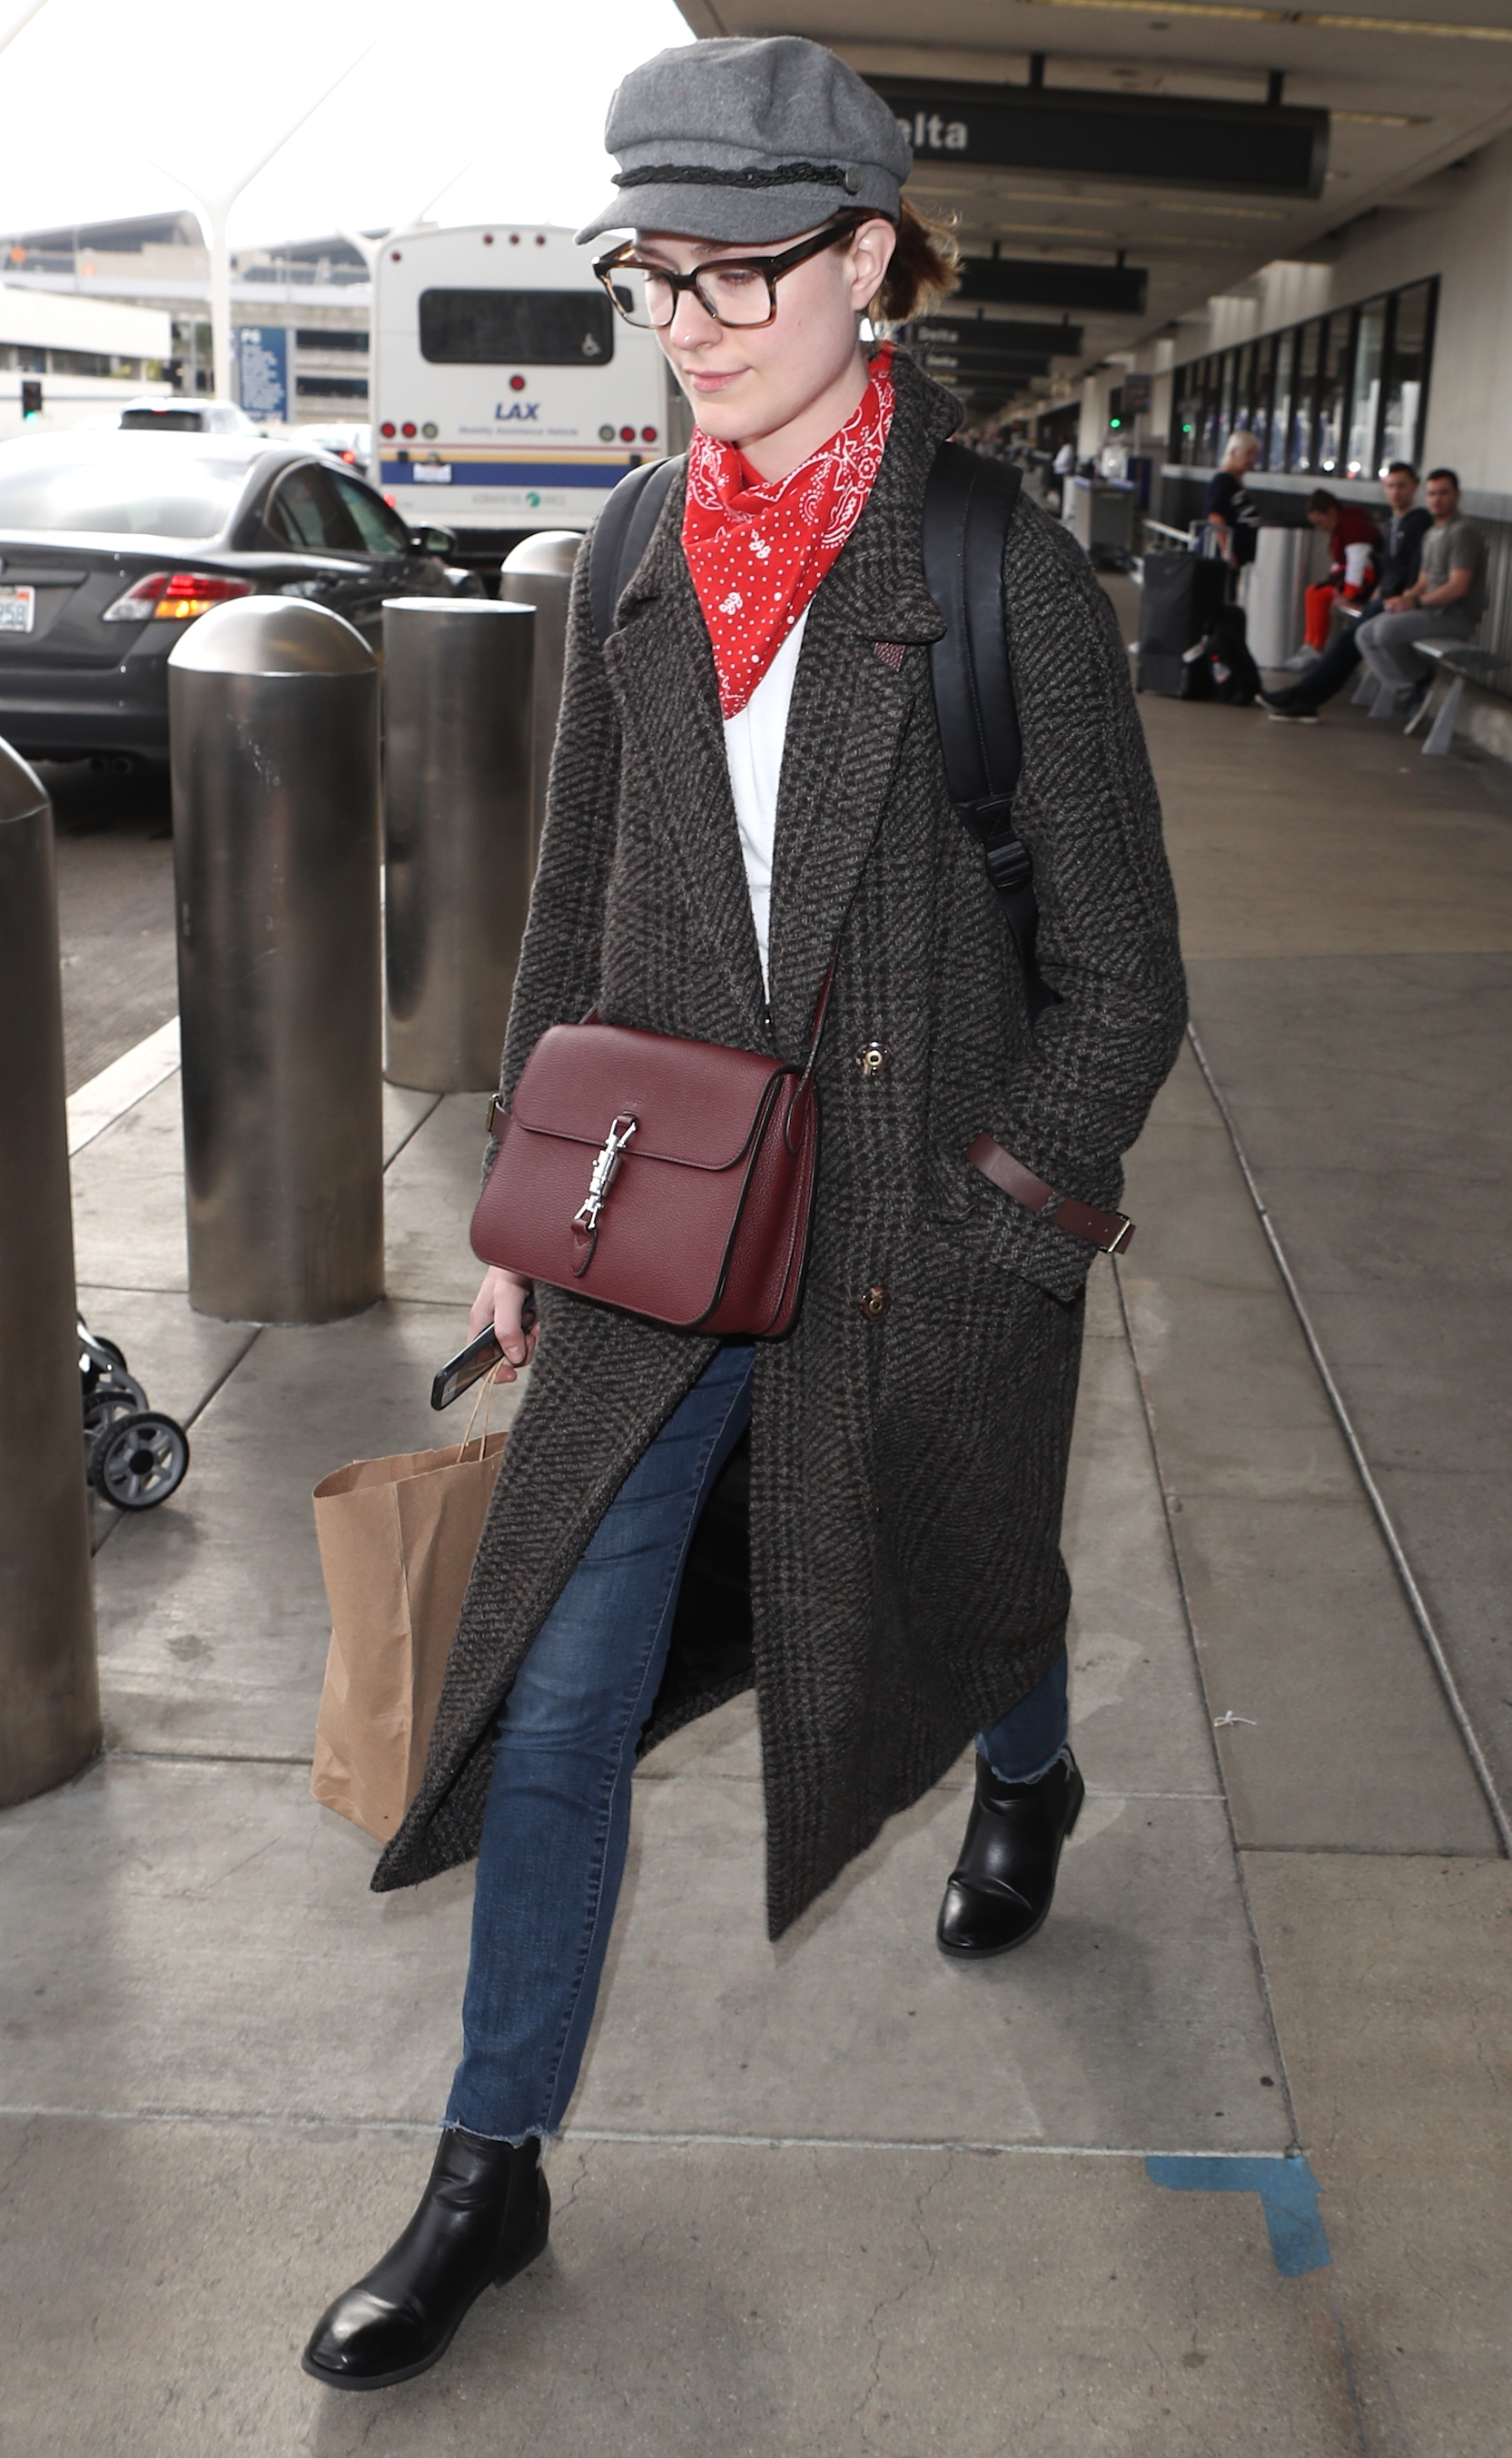 Evan Rachel Wood arrives at LAX Airport in Los Angeles on March 11, 2018.